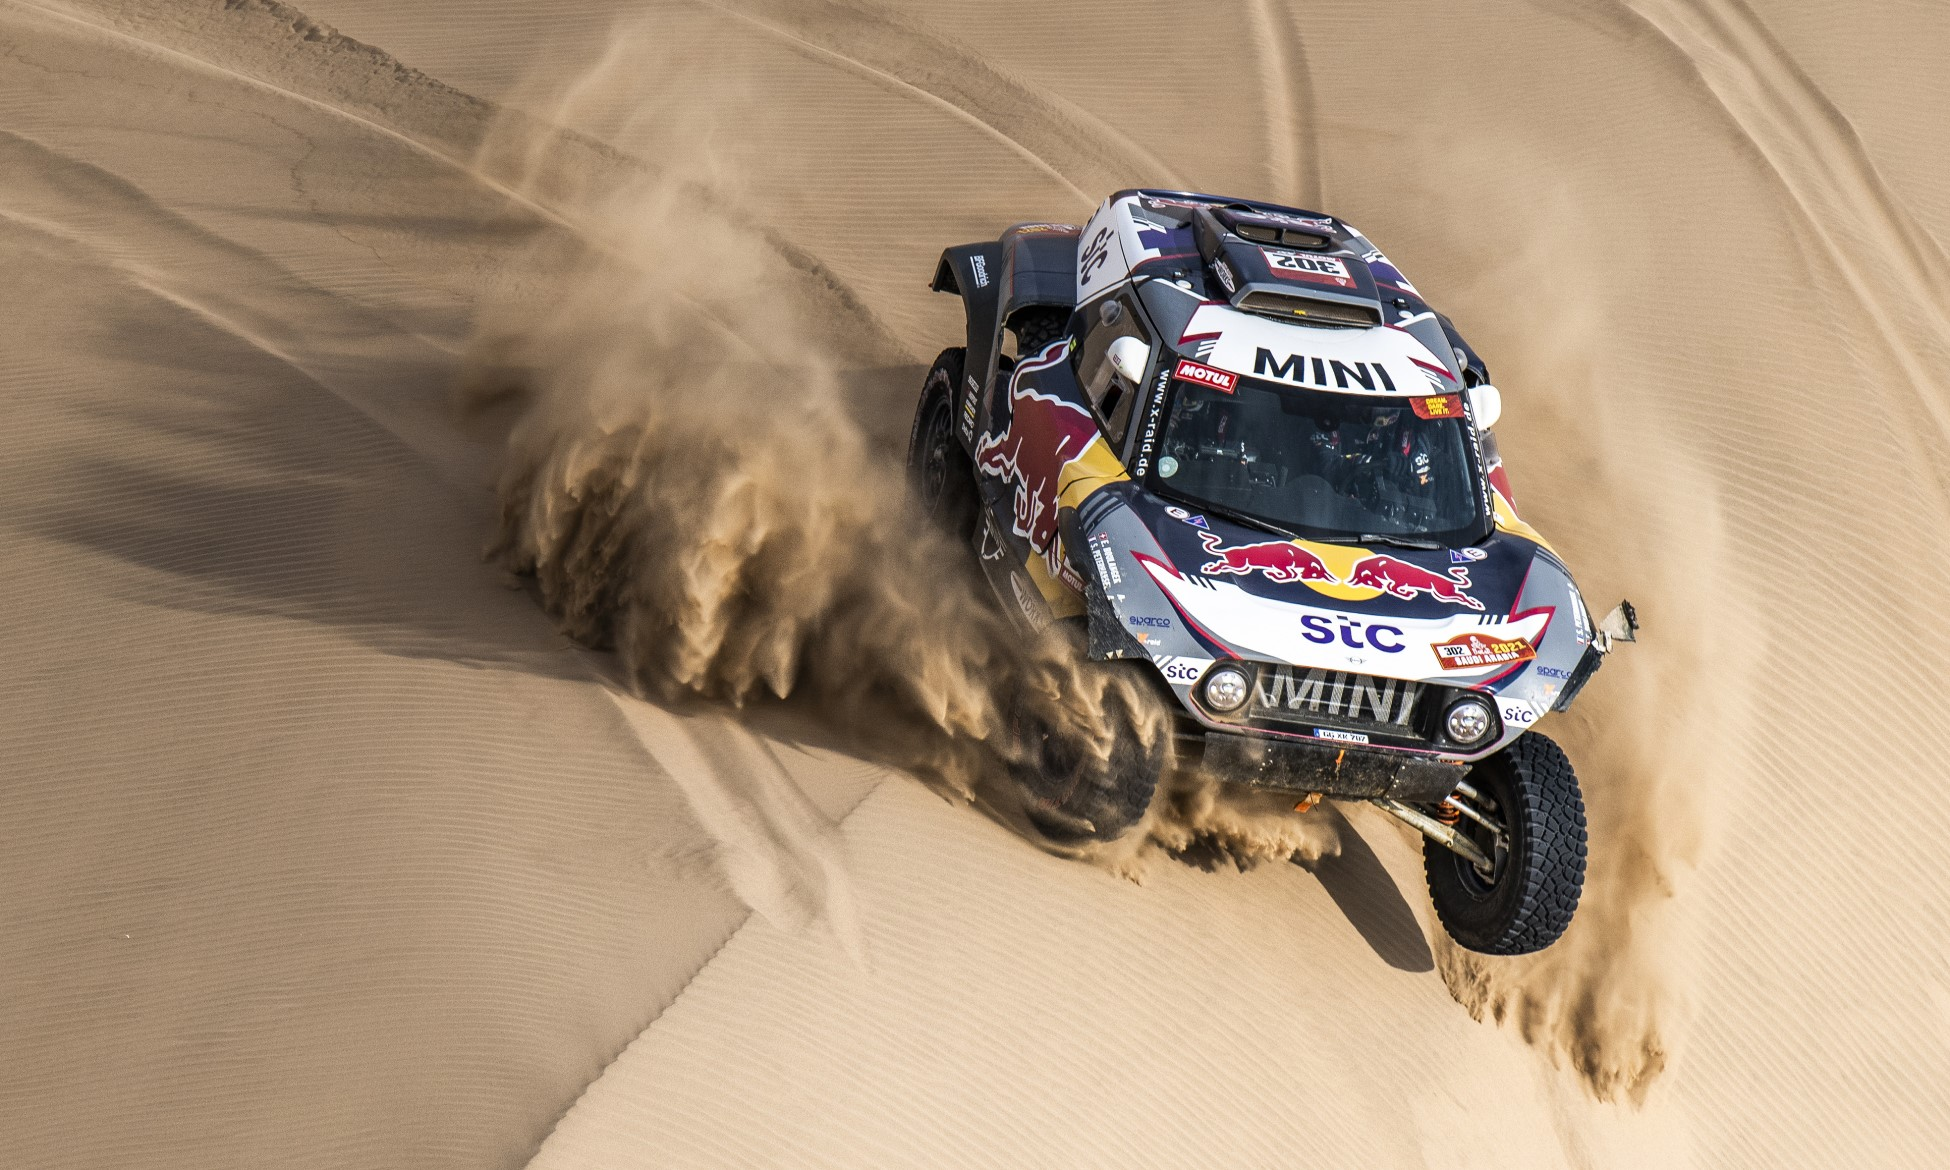 Stephane Peterhansel in action during 2021 Dakar Stage 12 (Image C.Lopez ASO)